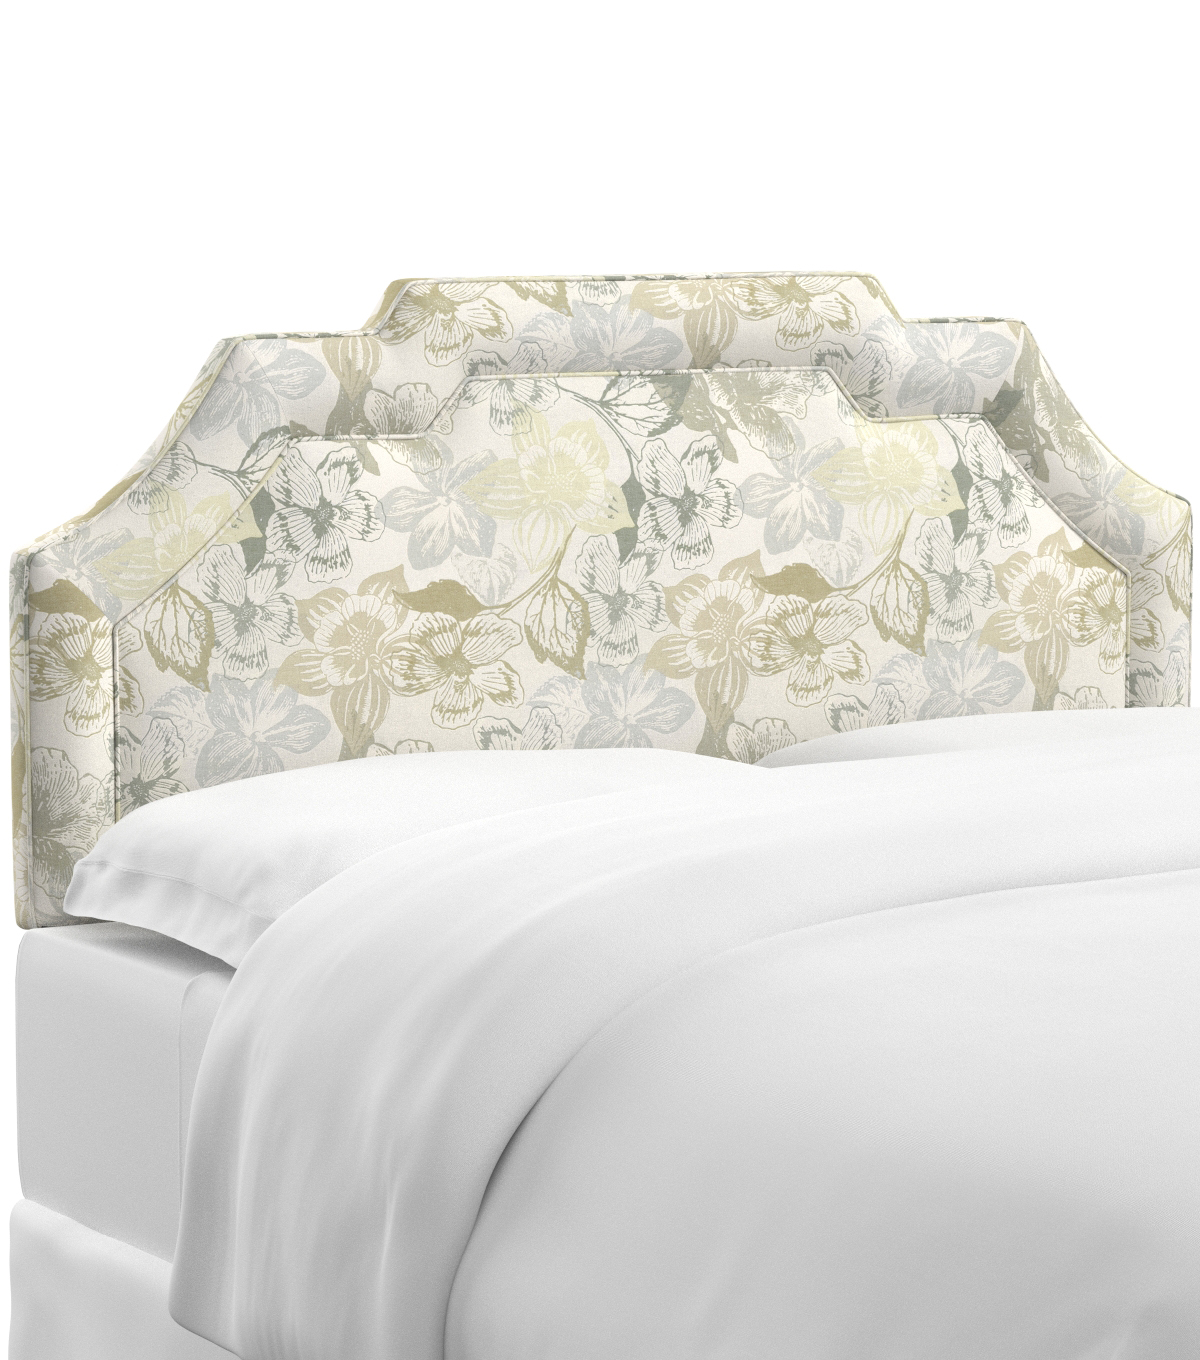 Skyline Furniture Notched Border Headboard-King, Peyton Linen